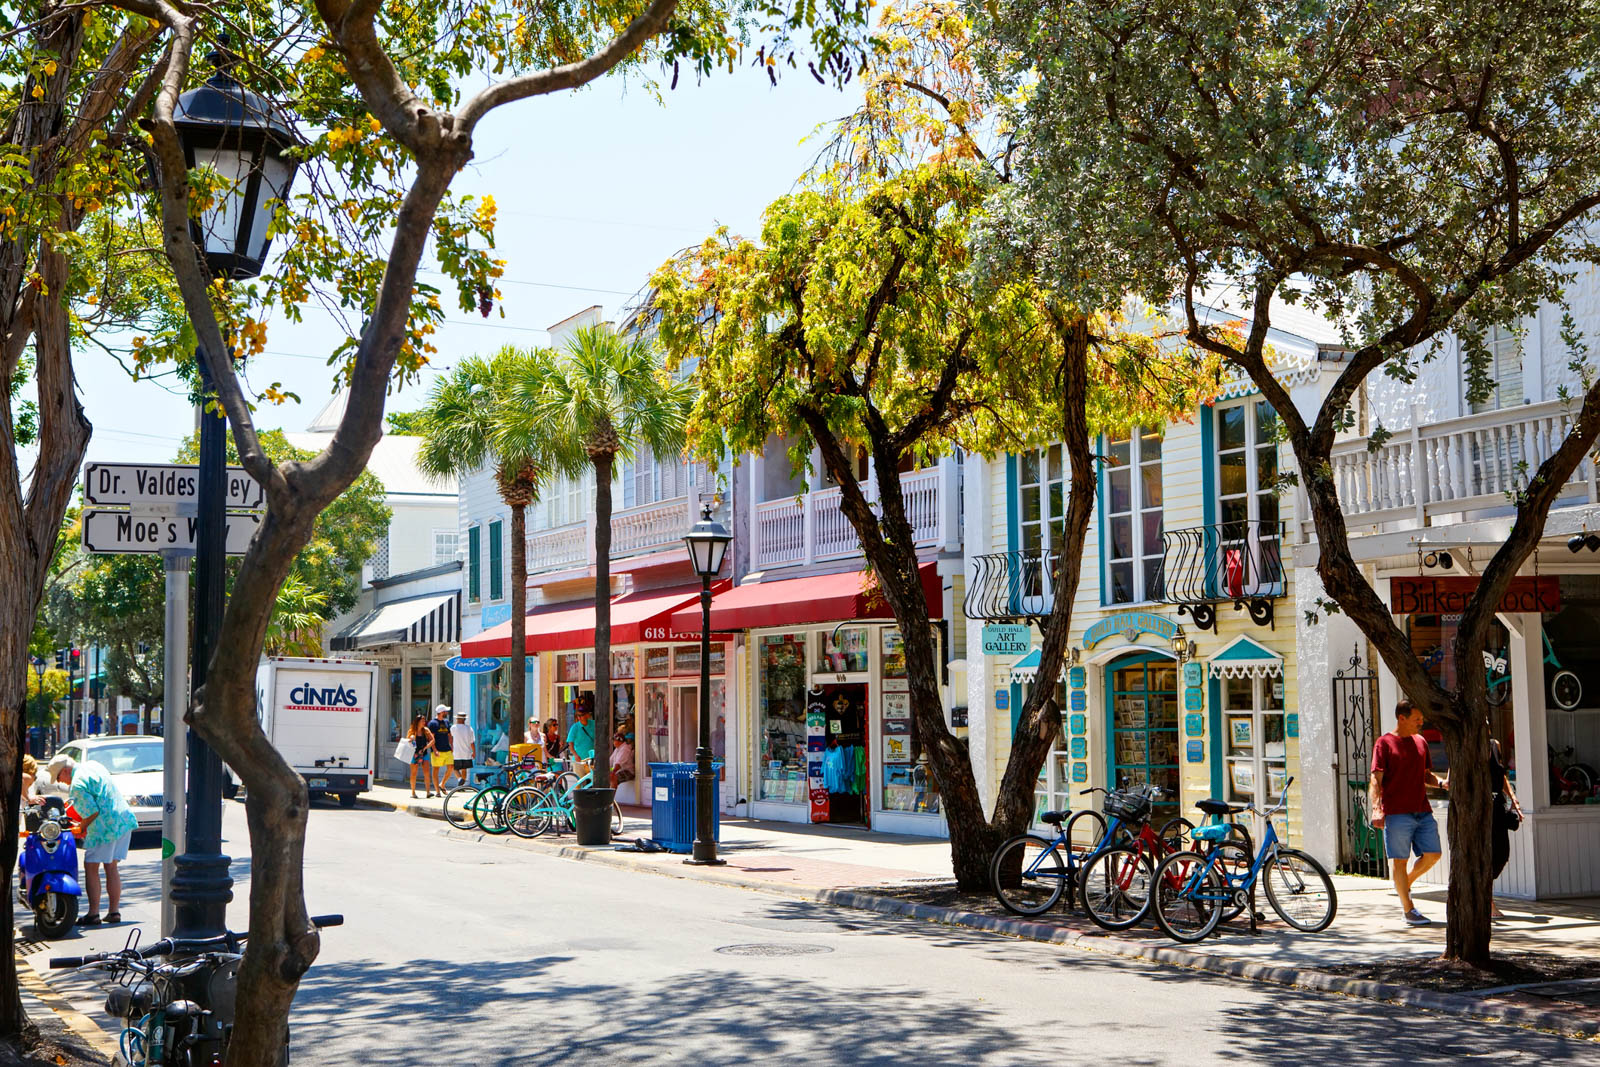 The historic and popular center and Duval Street in downtown Key West. The best day trips from Miami include Key West along the sea bridge highway.